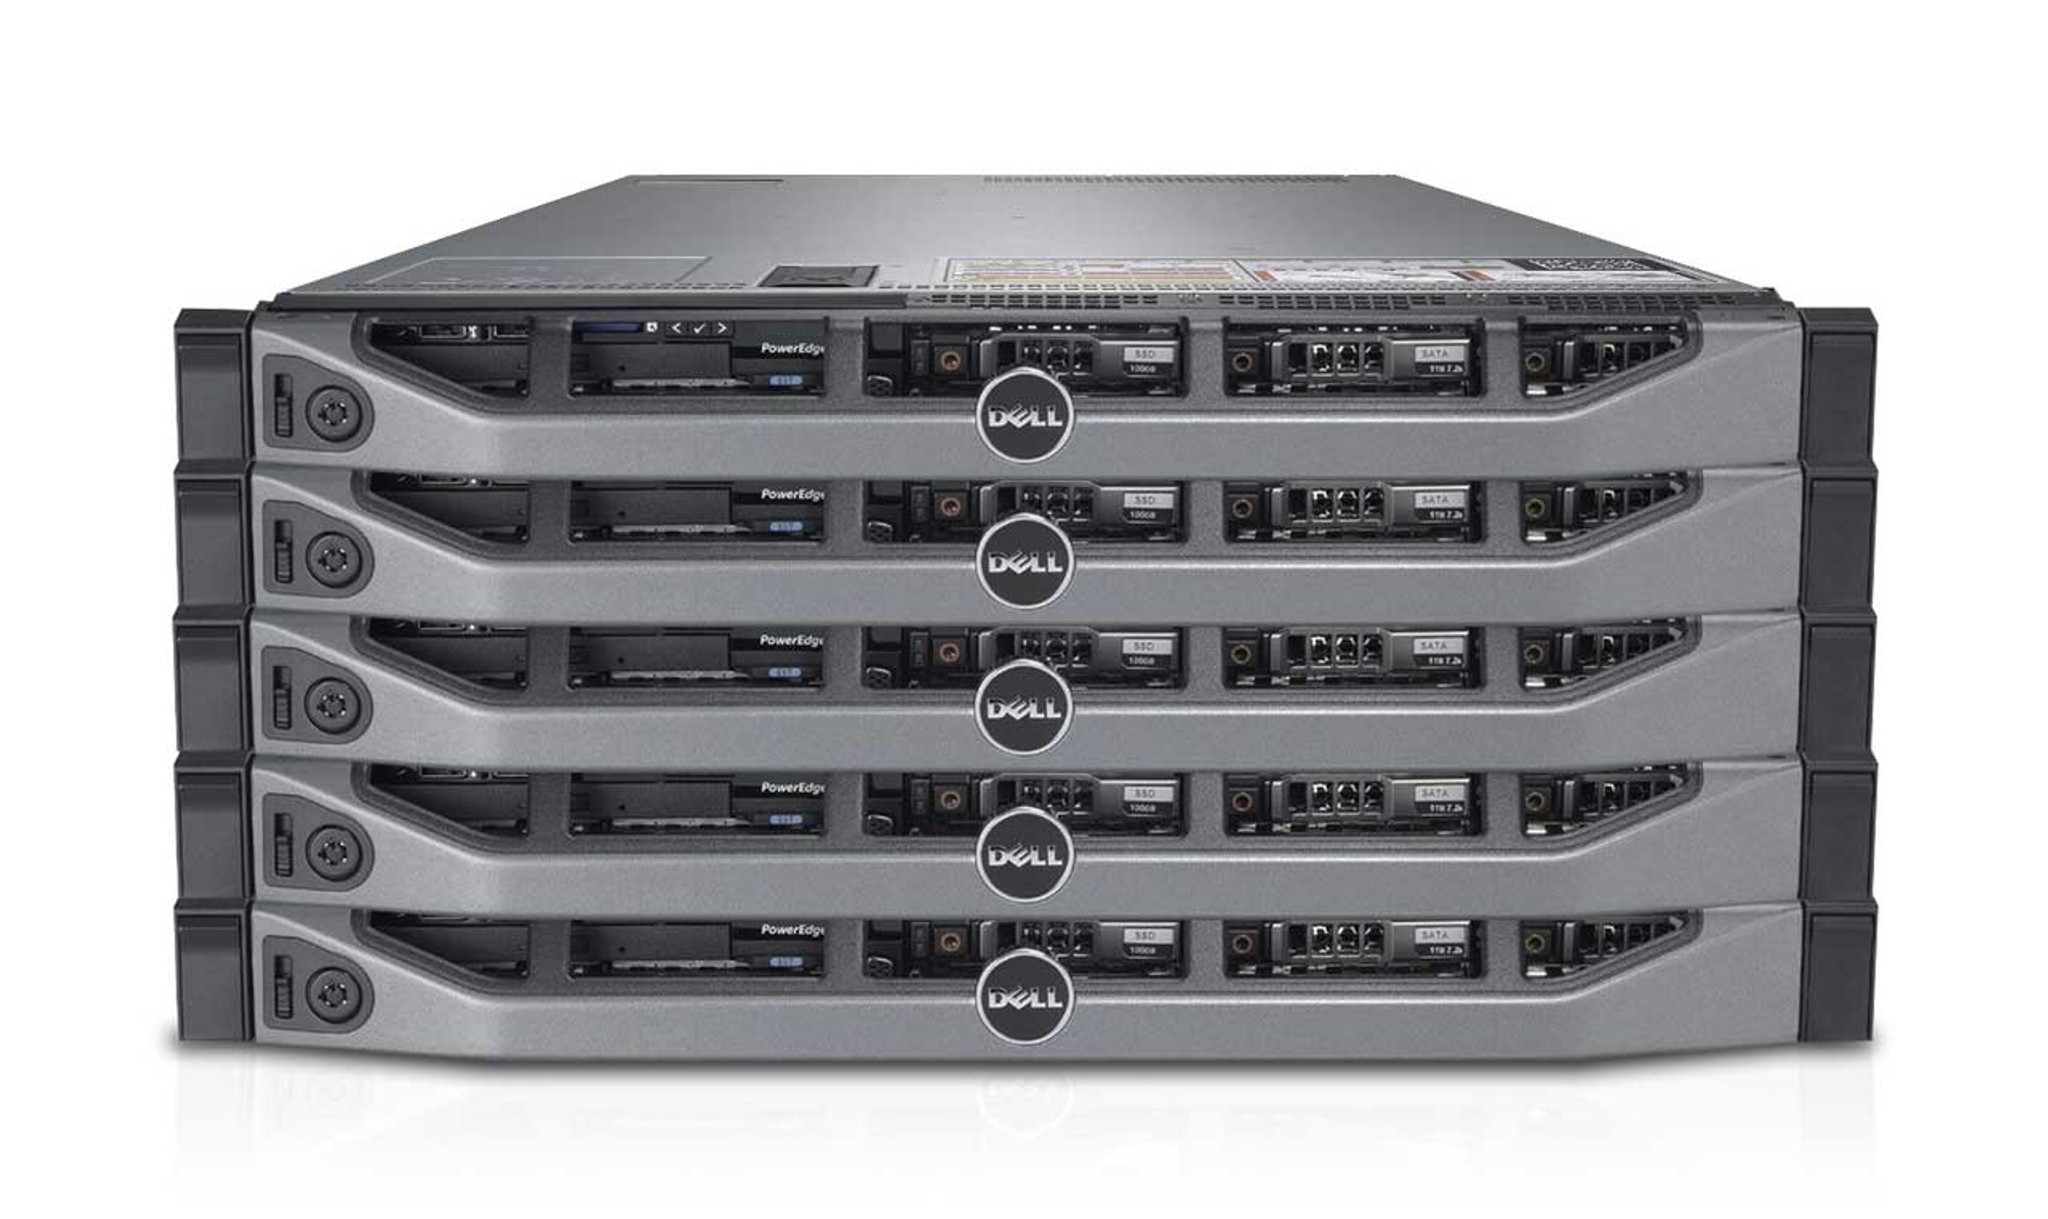 Dell PowerEdge R610 Server - 5 Pack - Configured